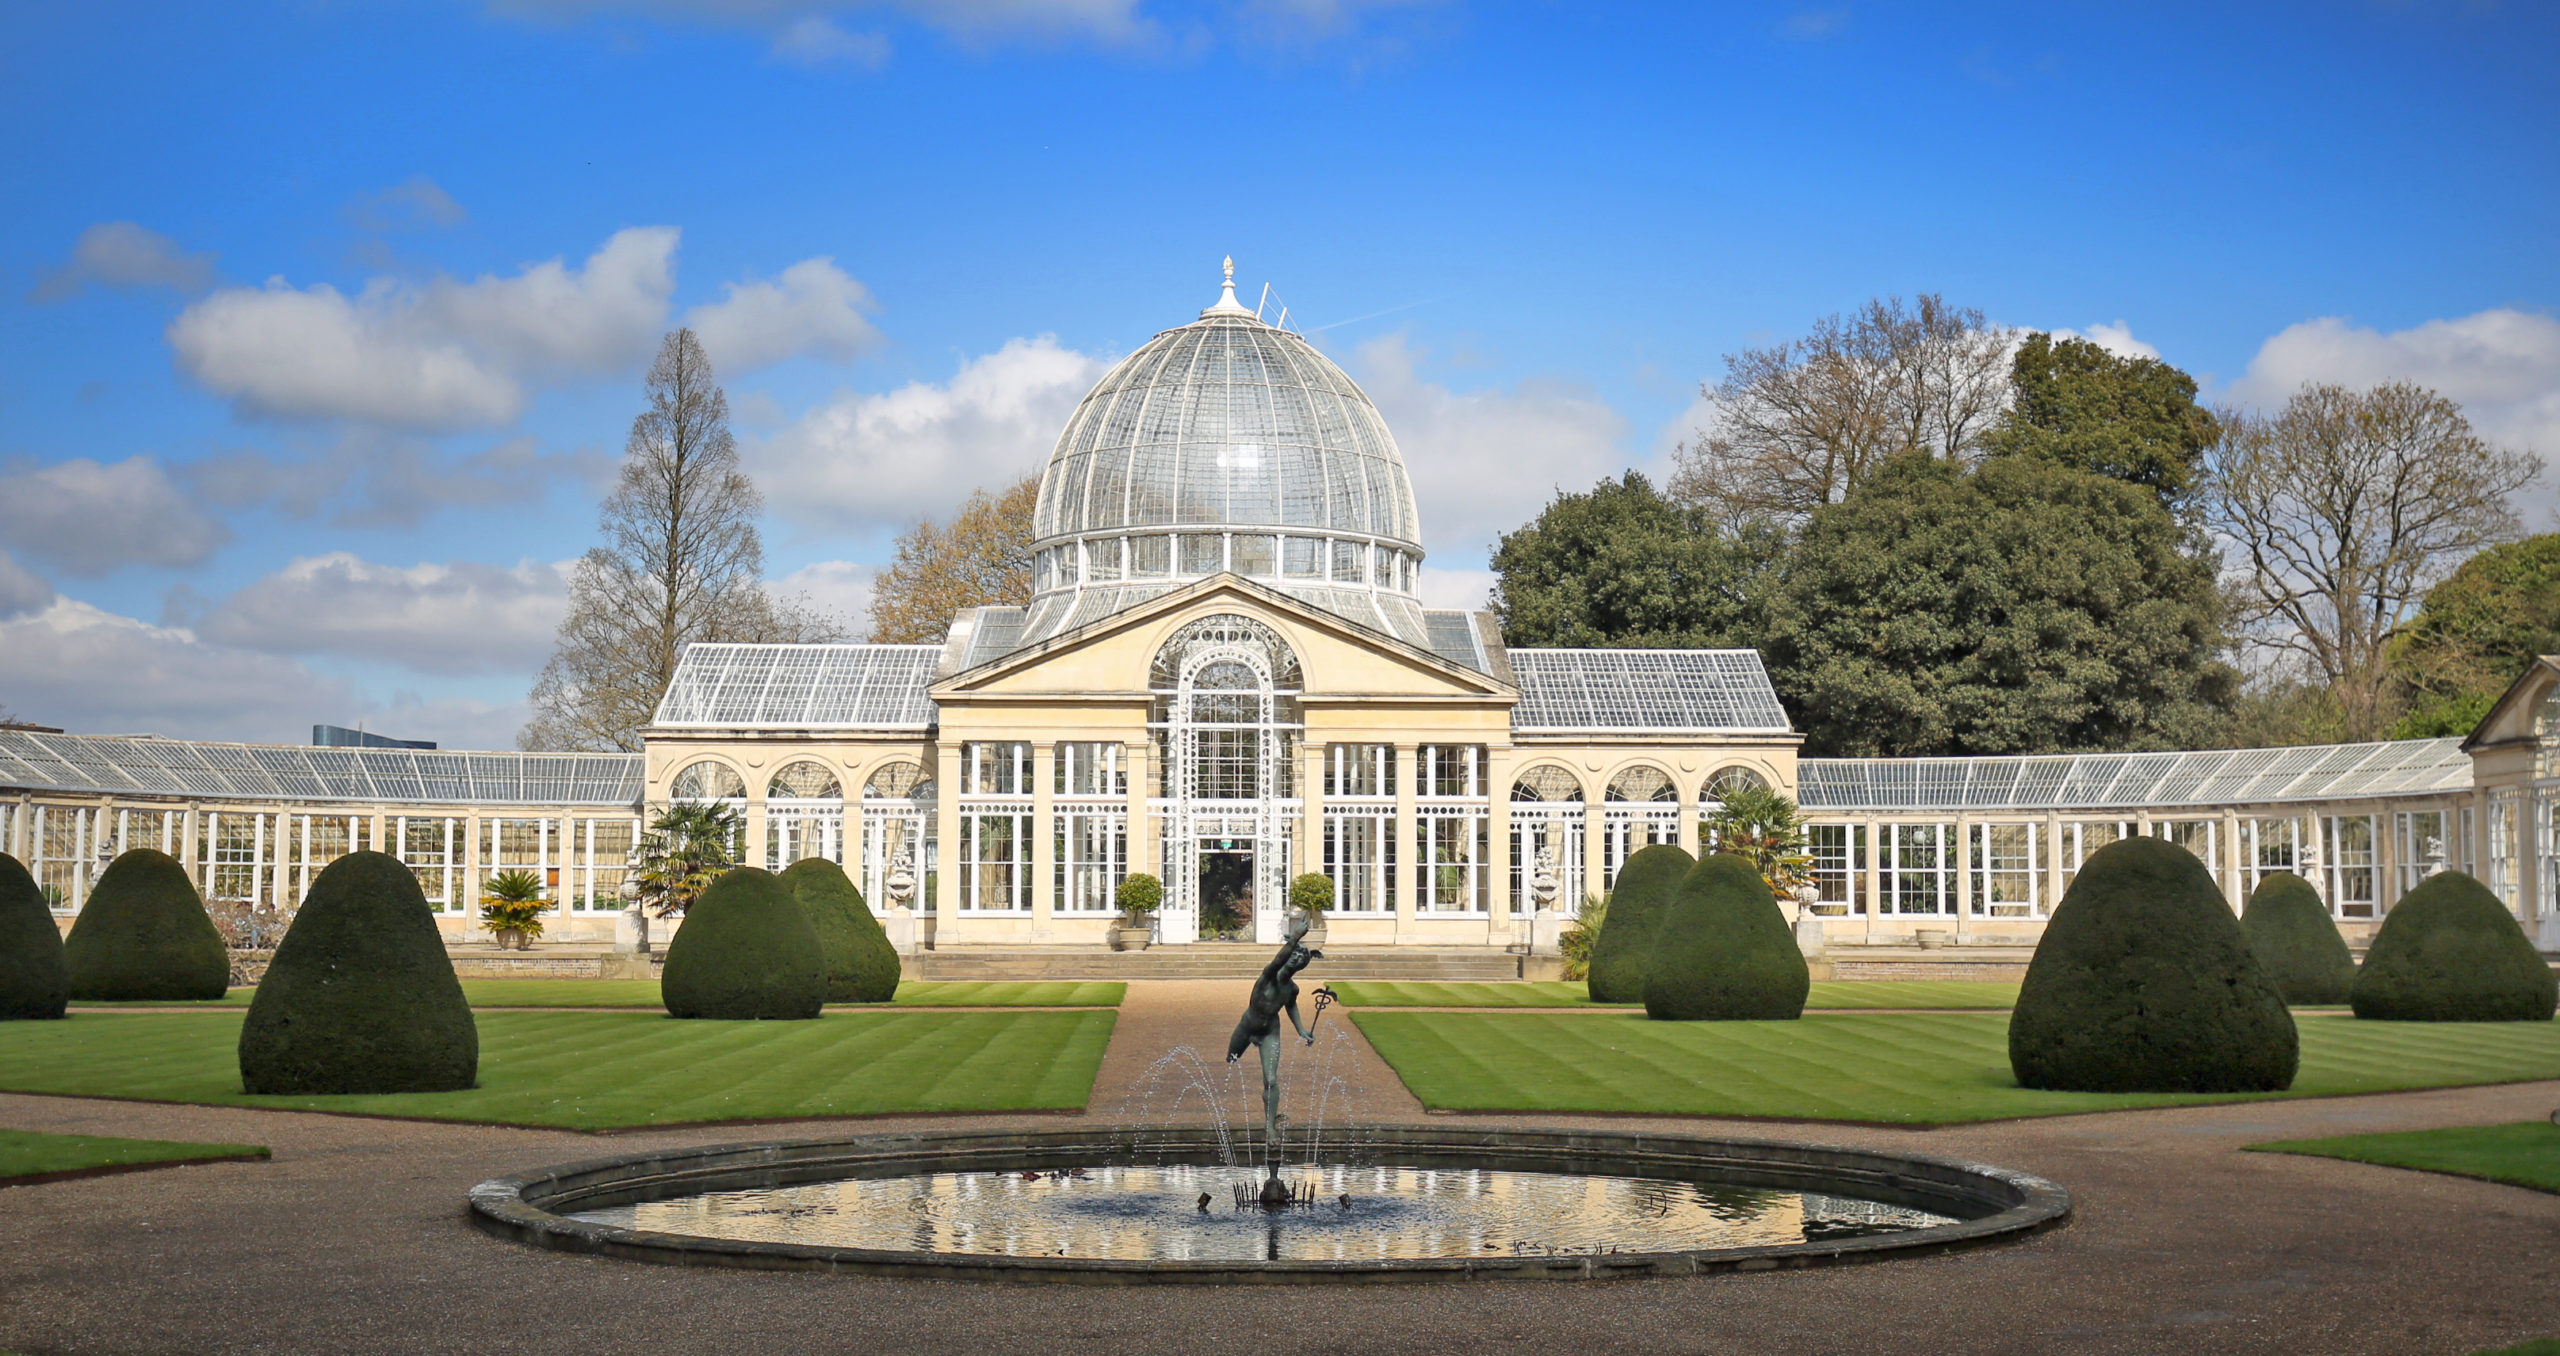 Syon Park in Brentford, West London, England. A large glass house against a pale blue sky in a landscaped garden. London Tourist Attraction.